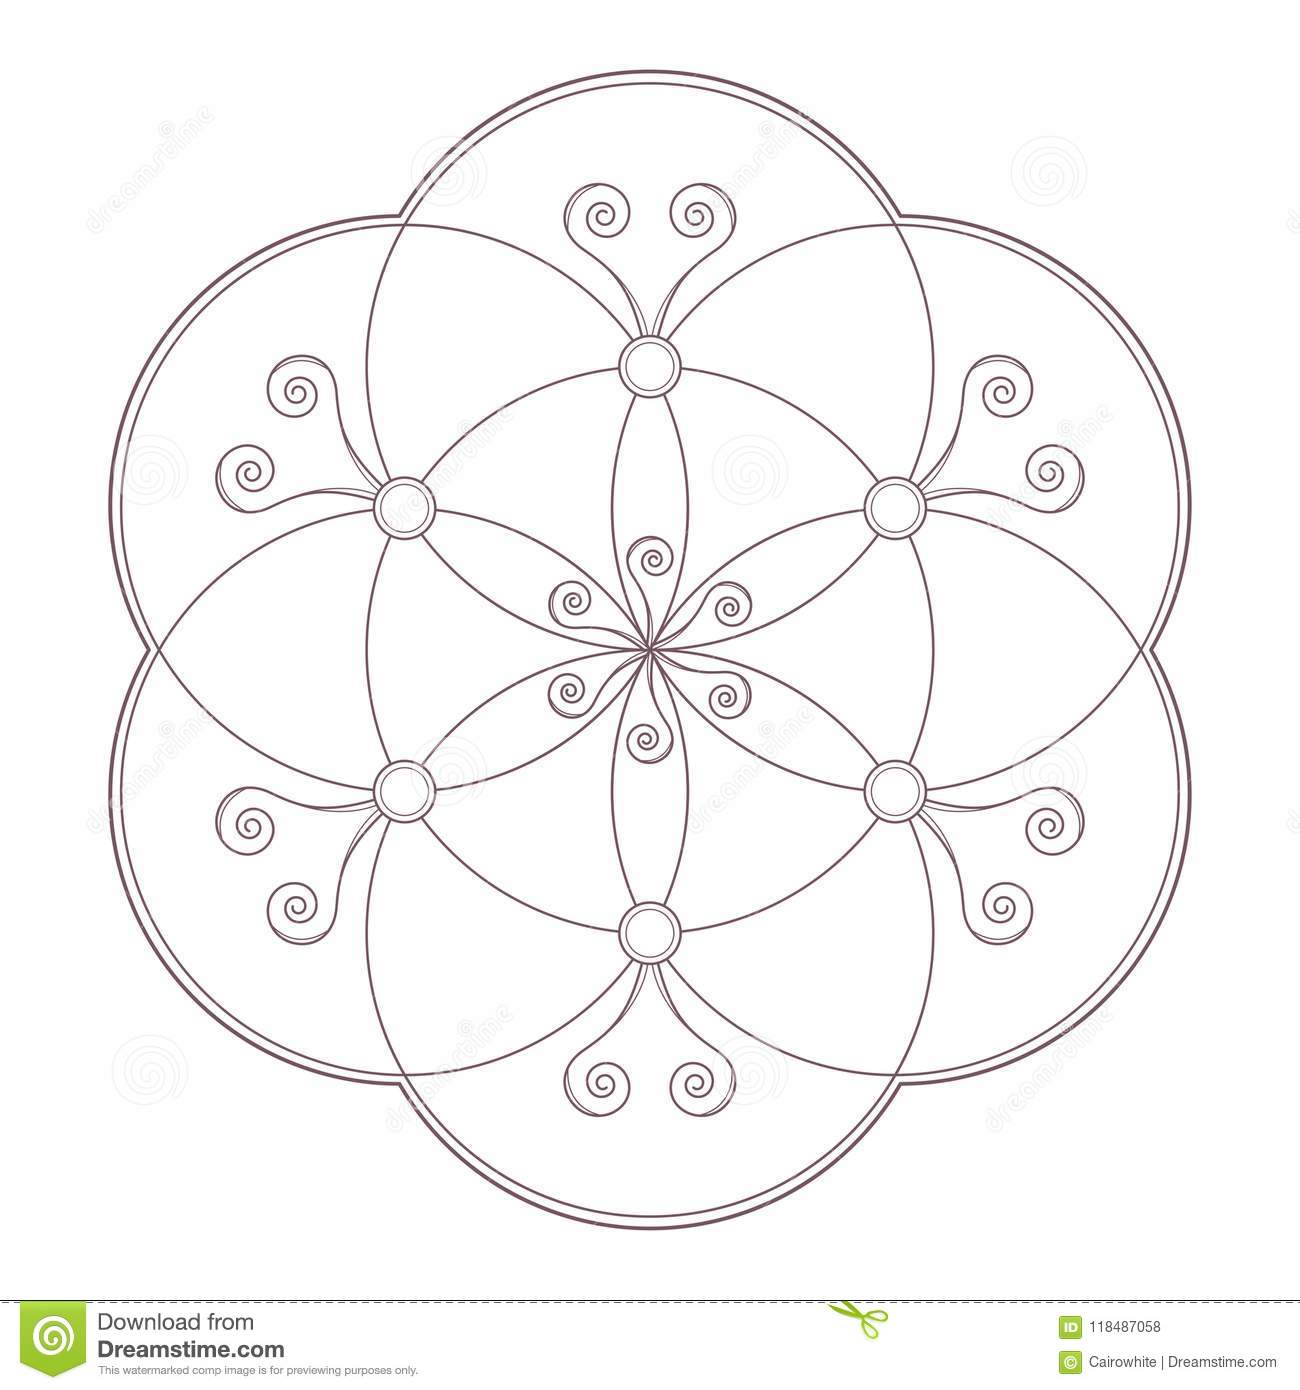 Line Art Vector Of Simple Mandala Design Stock Vector